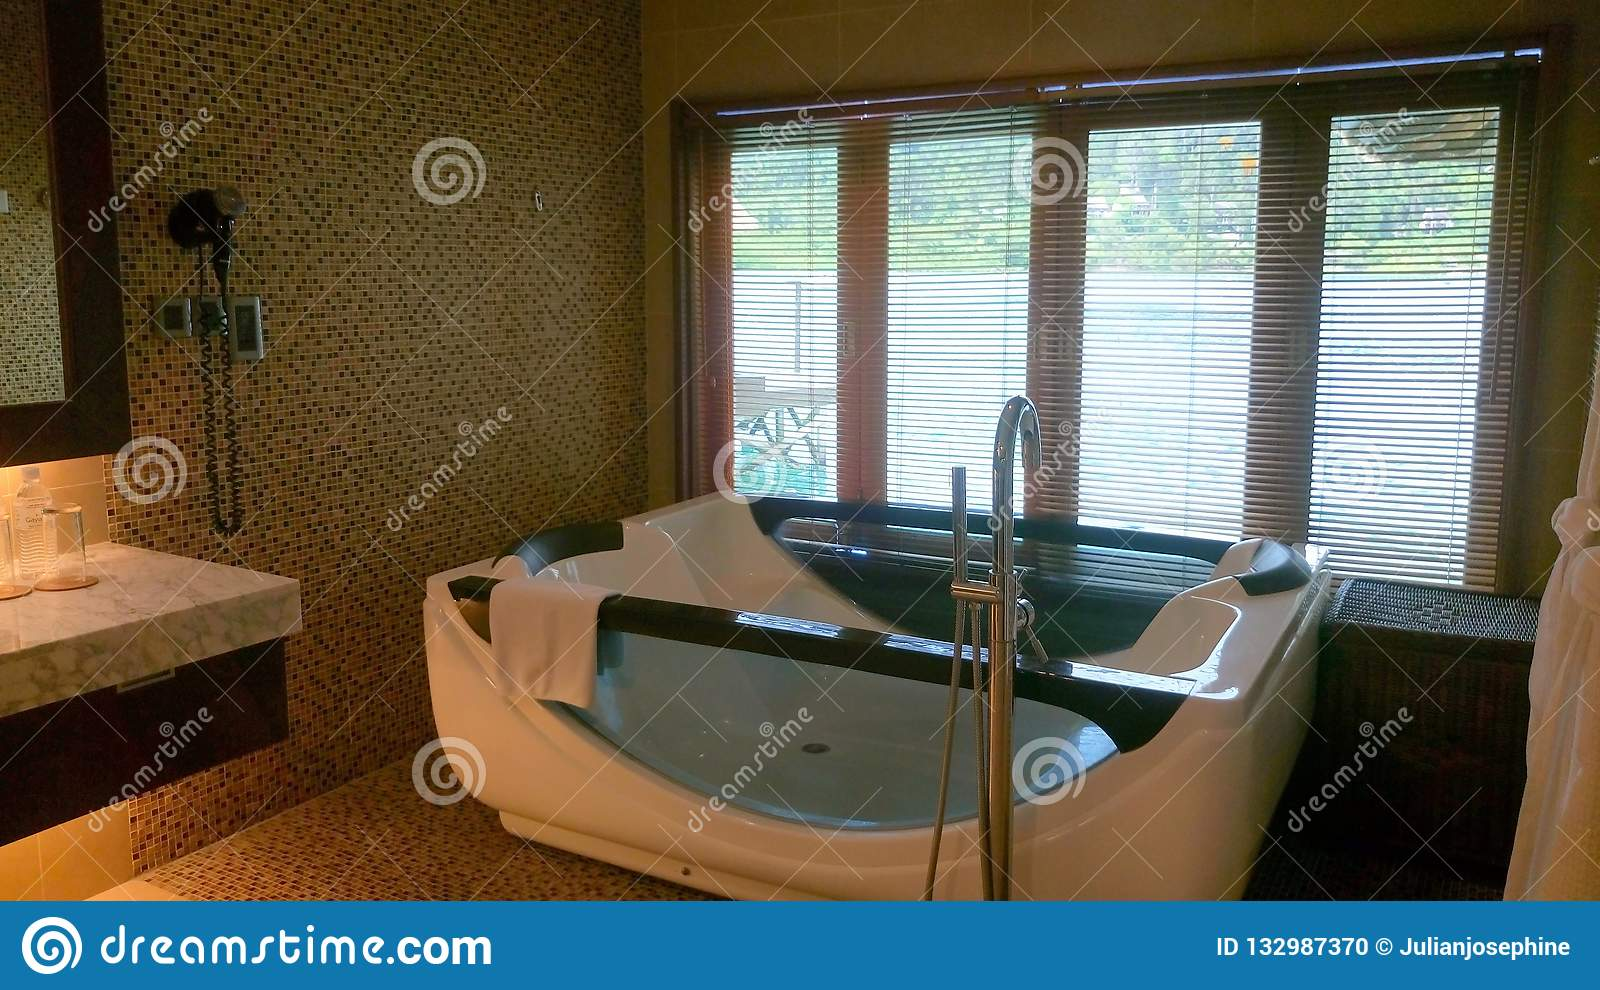 A private jacuzzi room for guest facilities.